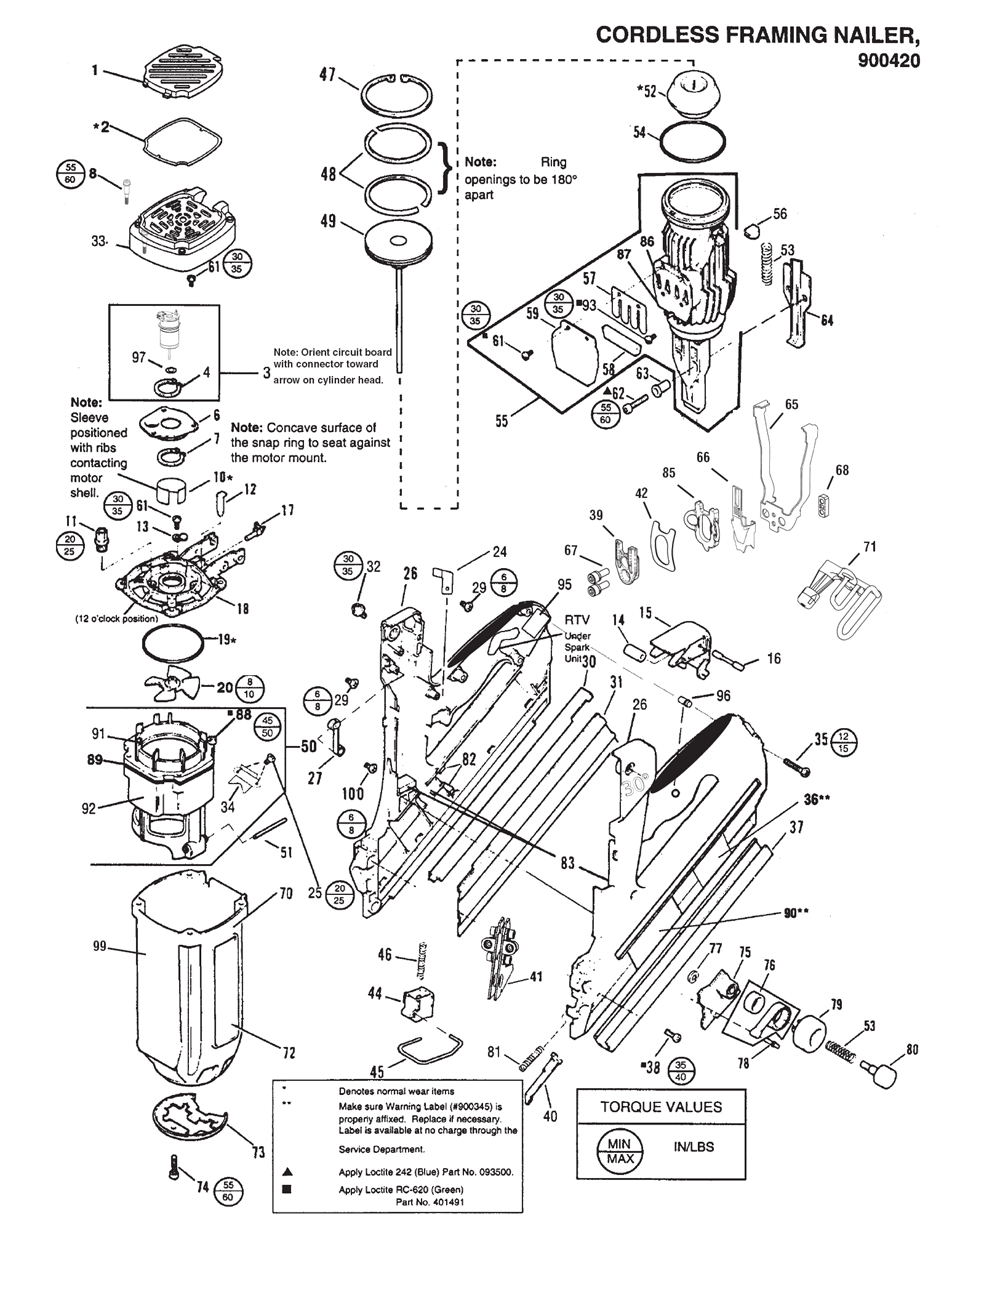 TM 55 1930 209 14P 6 132 additionally Book 2 Chapter 8 Directional Control Valves furthermore Pharmaceutical medical gases as well 4h5t36 also Paslode 900420 Parts. on pneumatic circuit diagram